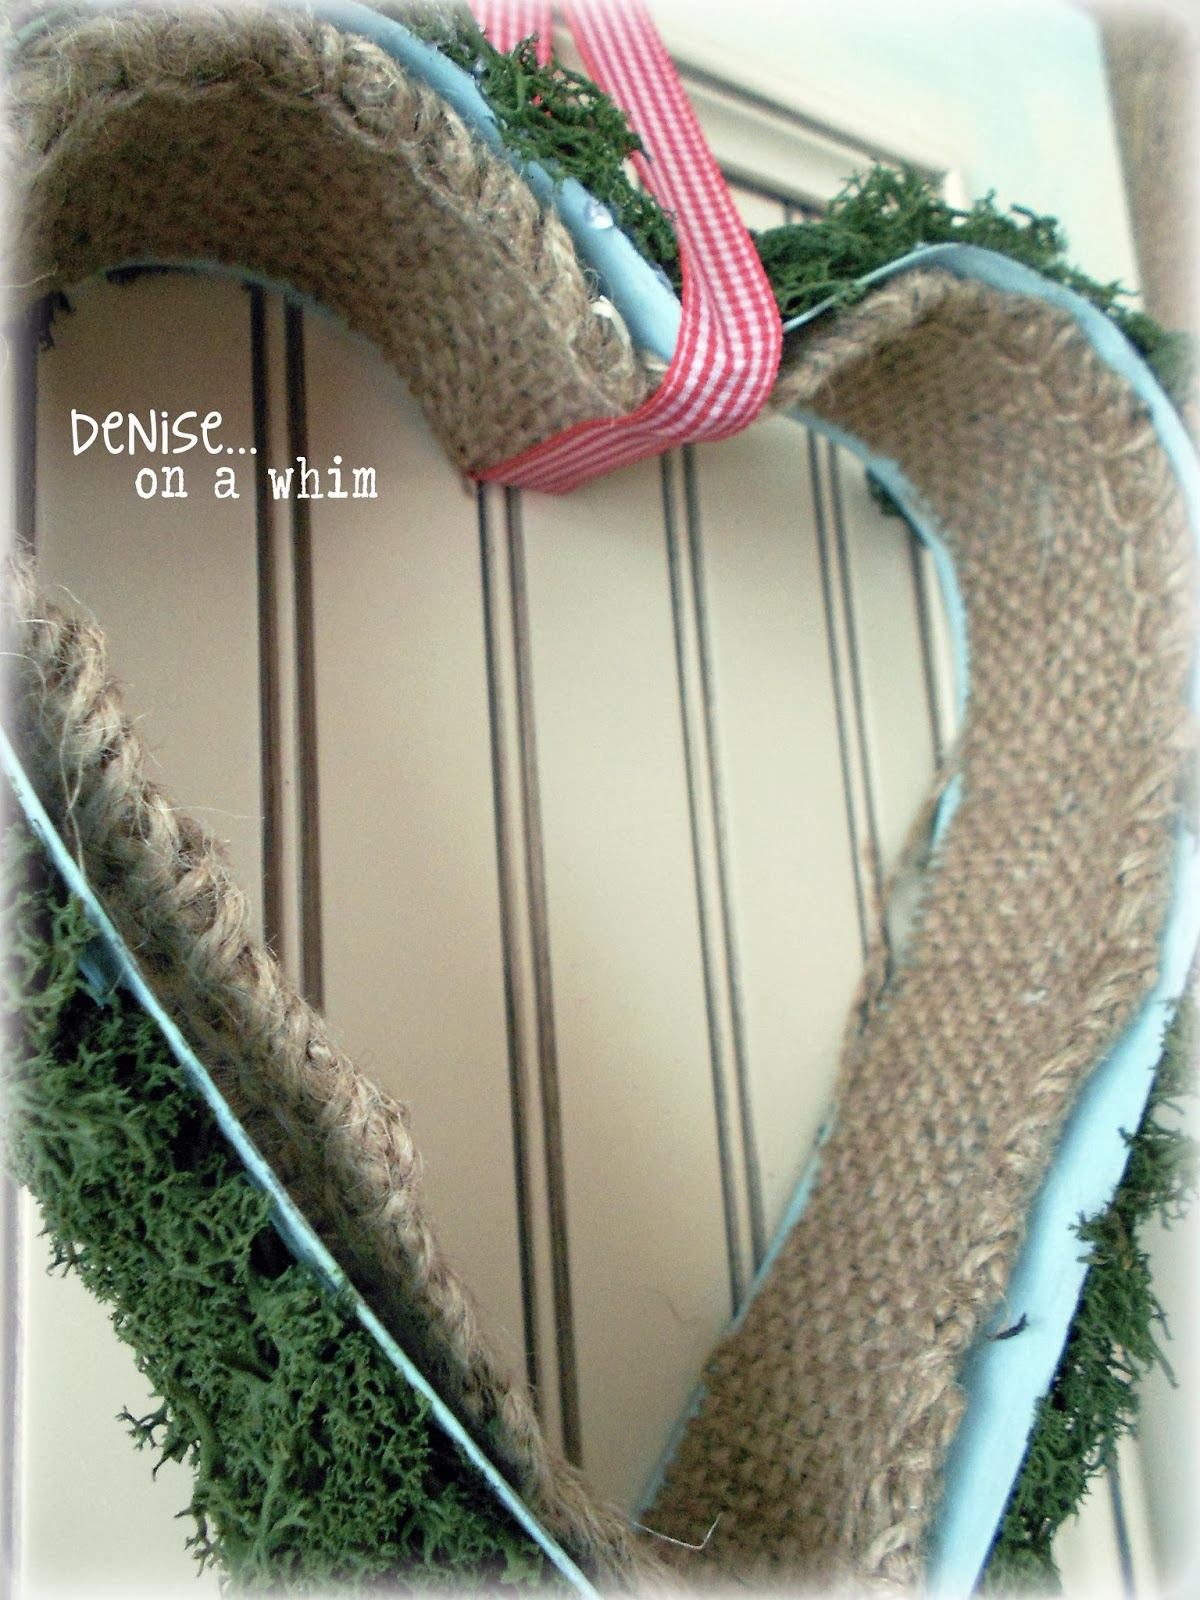 Burlap Lined Metal Heart Wall Decor via http://deniseonawhim.blogspot.com